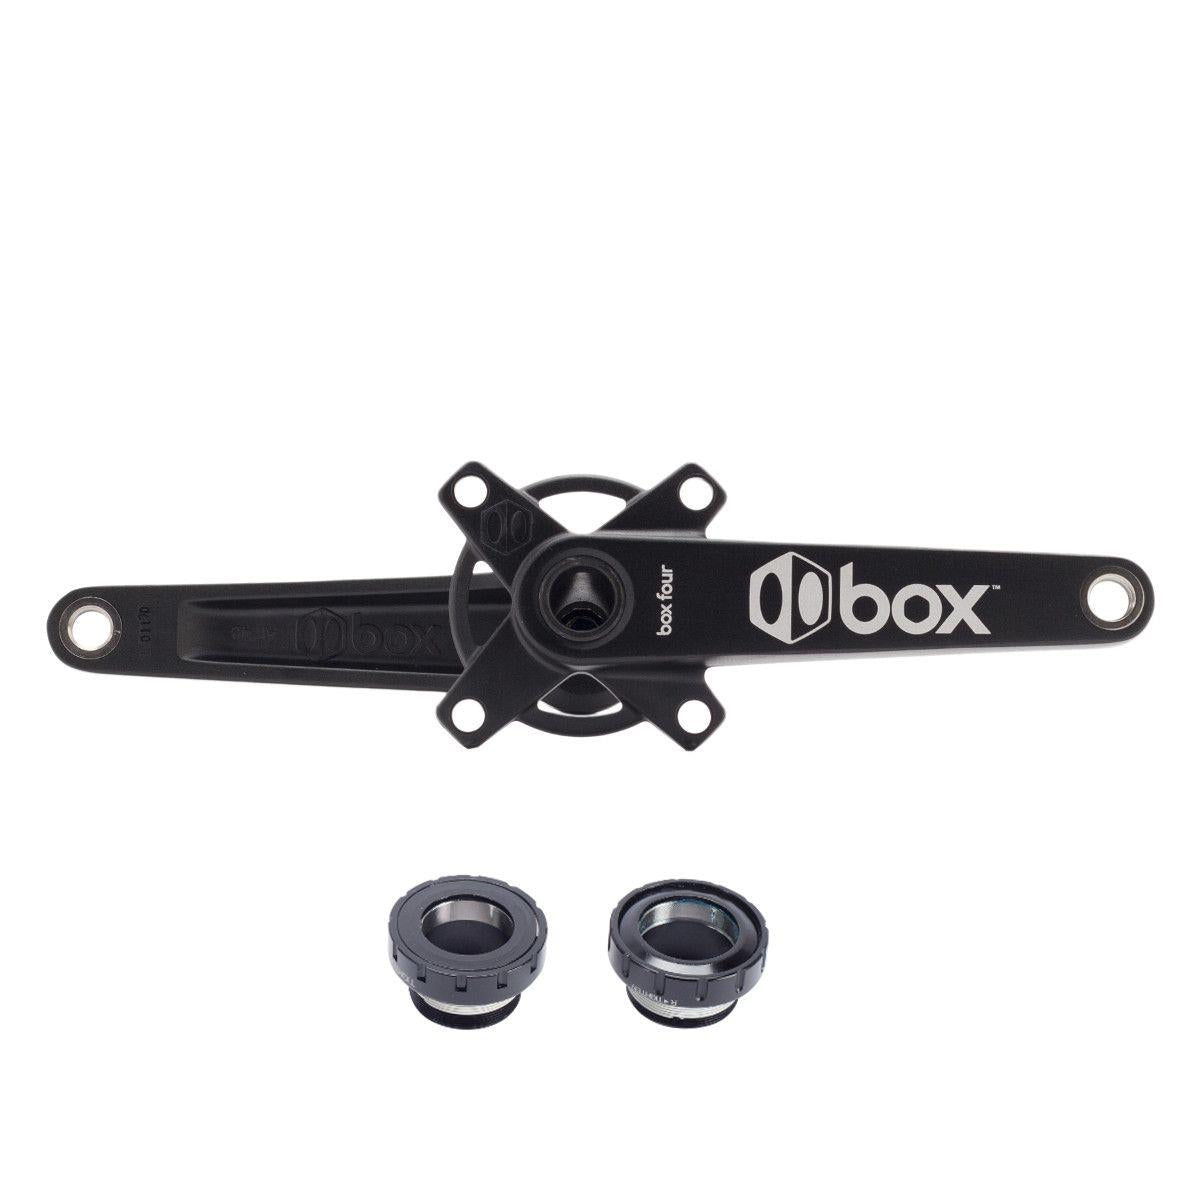 Box Four Forged 2pc Race Cranks